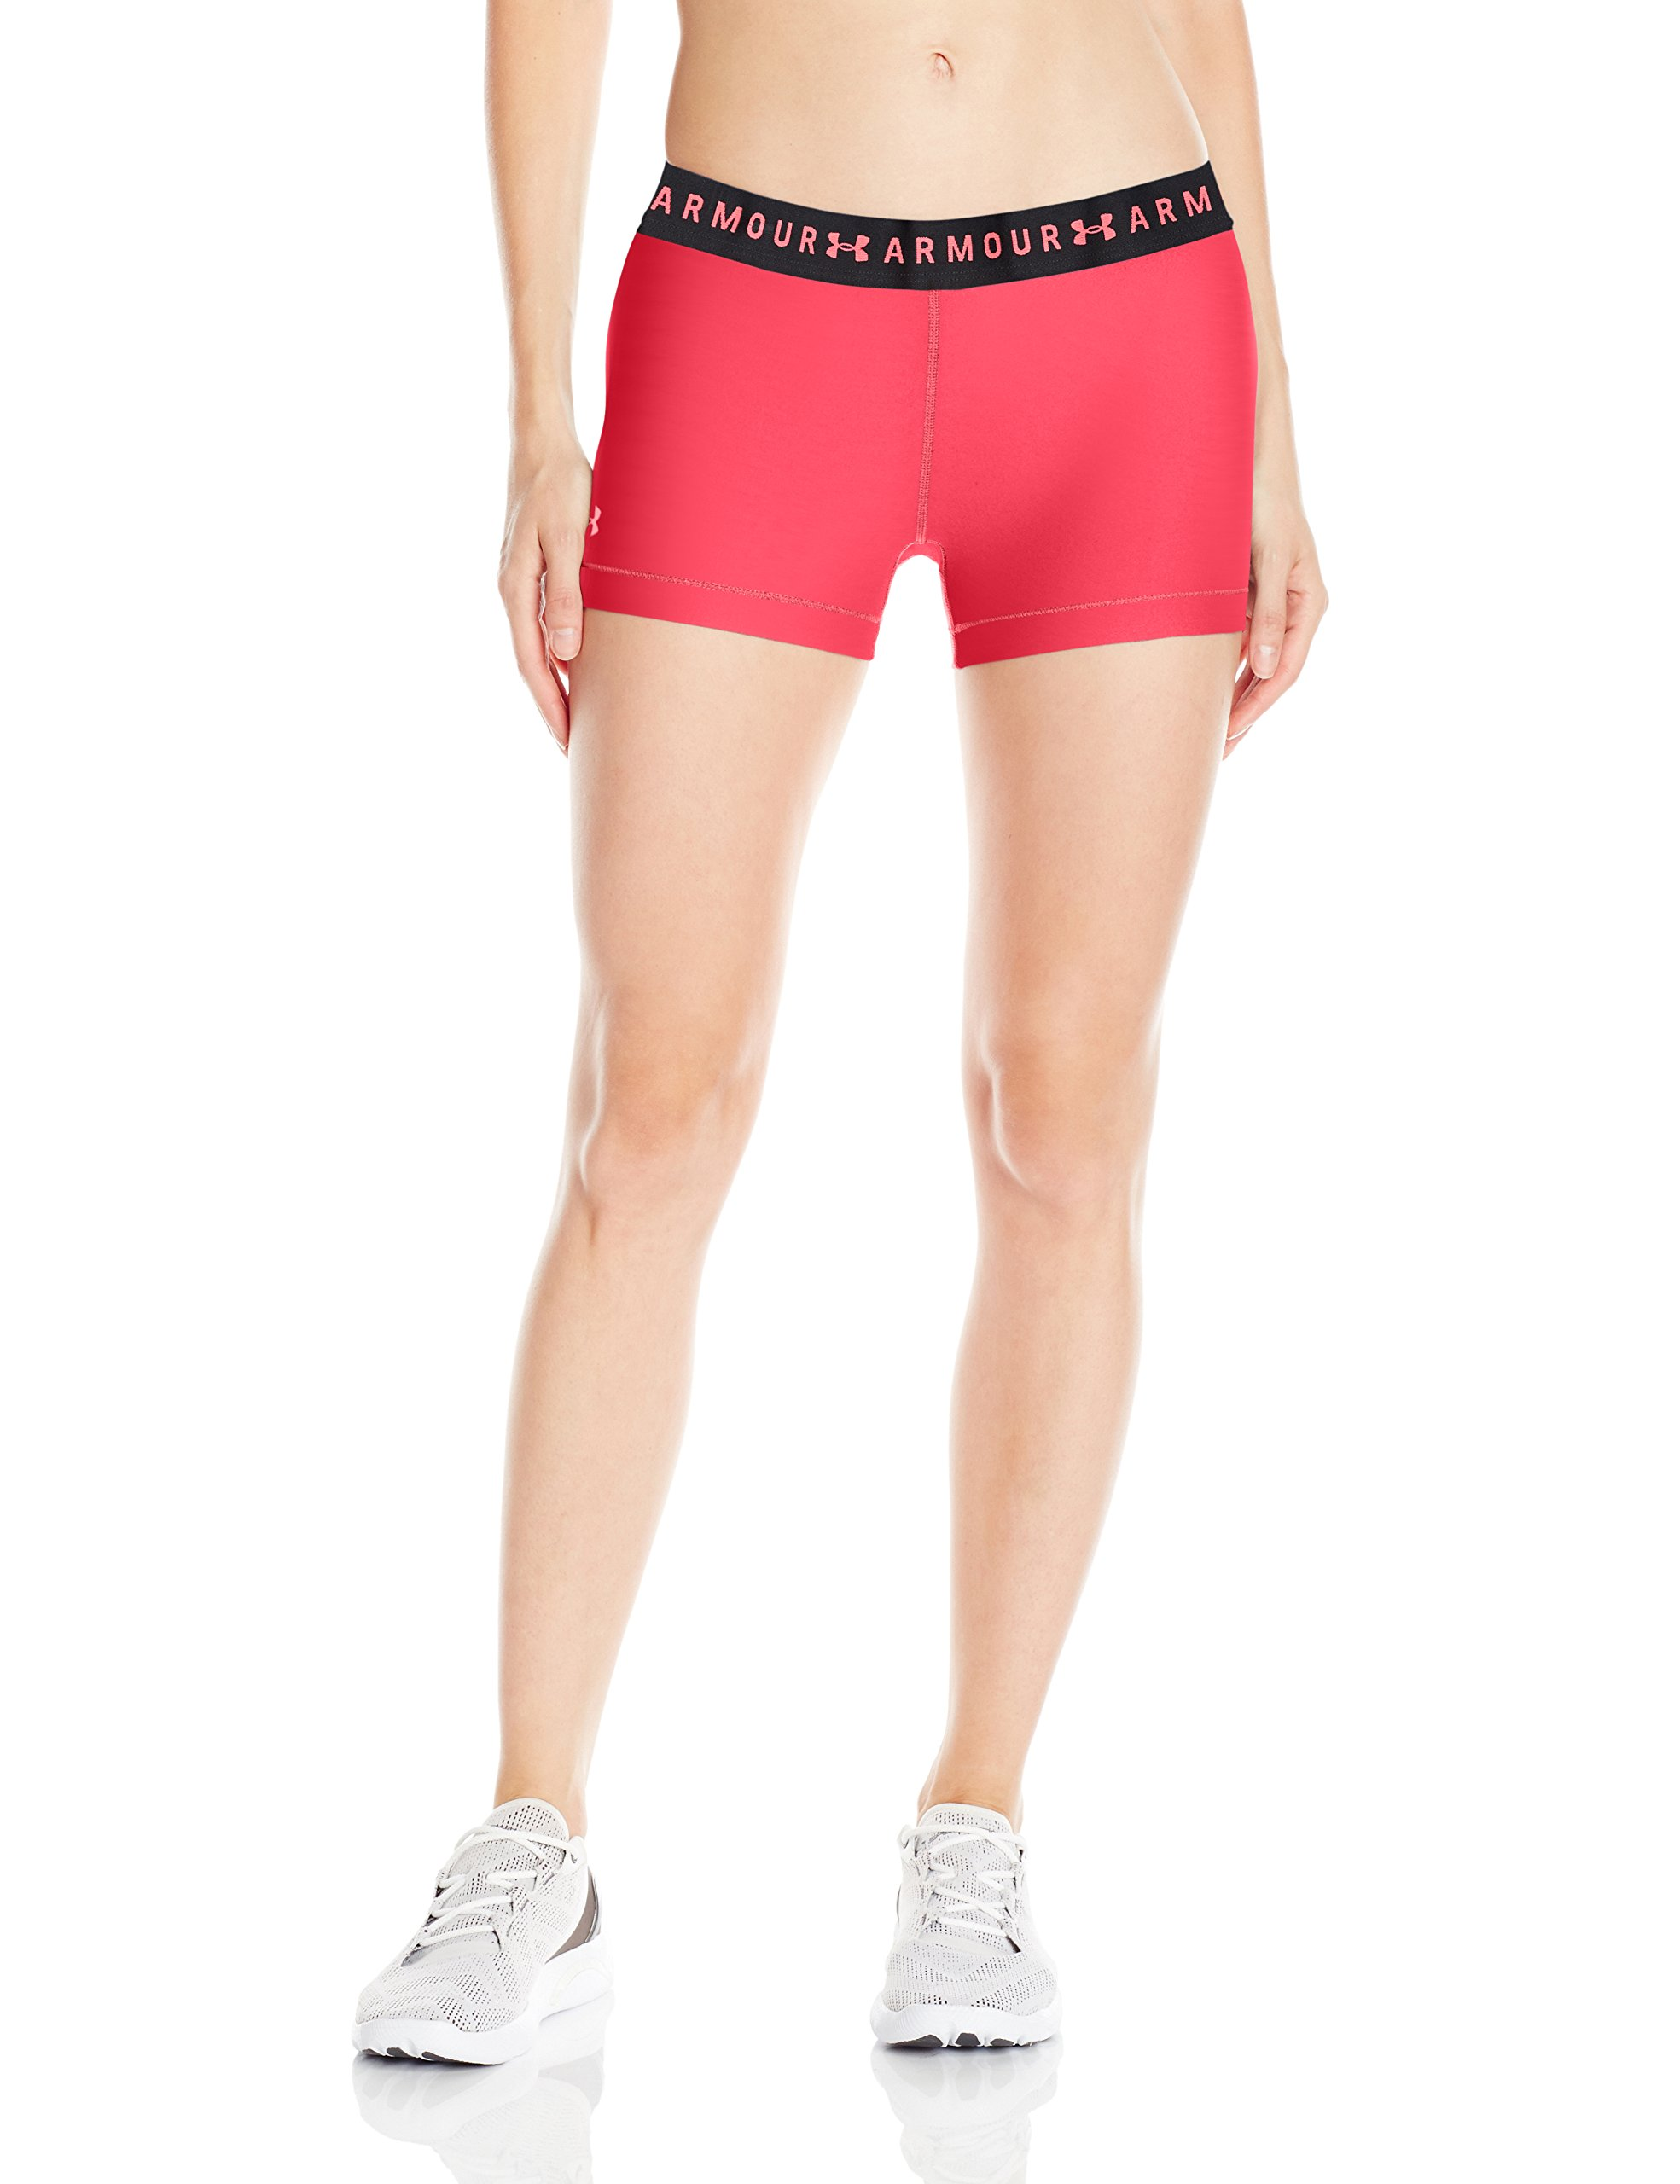 Under Armour Women's HeatGear Armour Shorty, Coral Cove (714)/Brilliance, X-Small